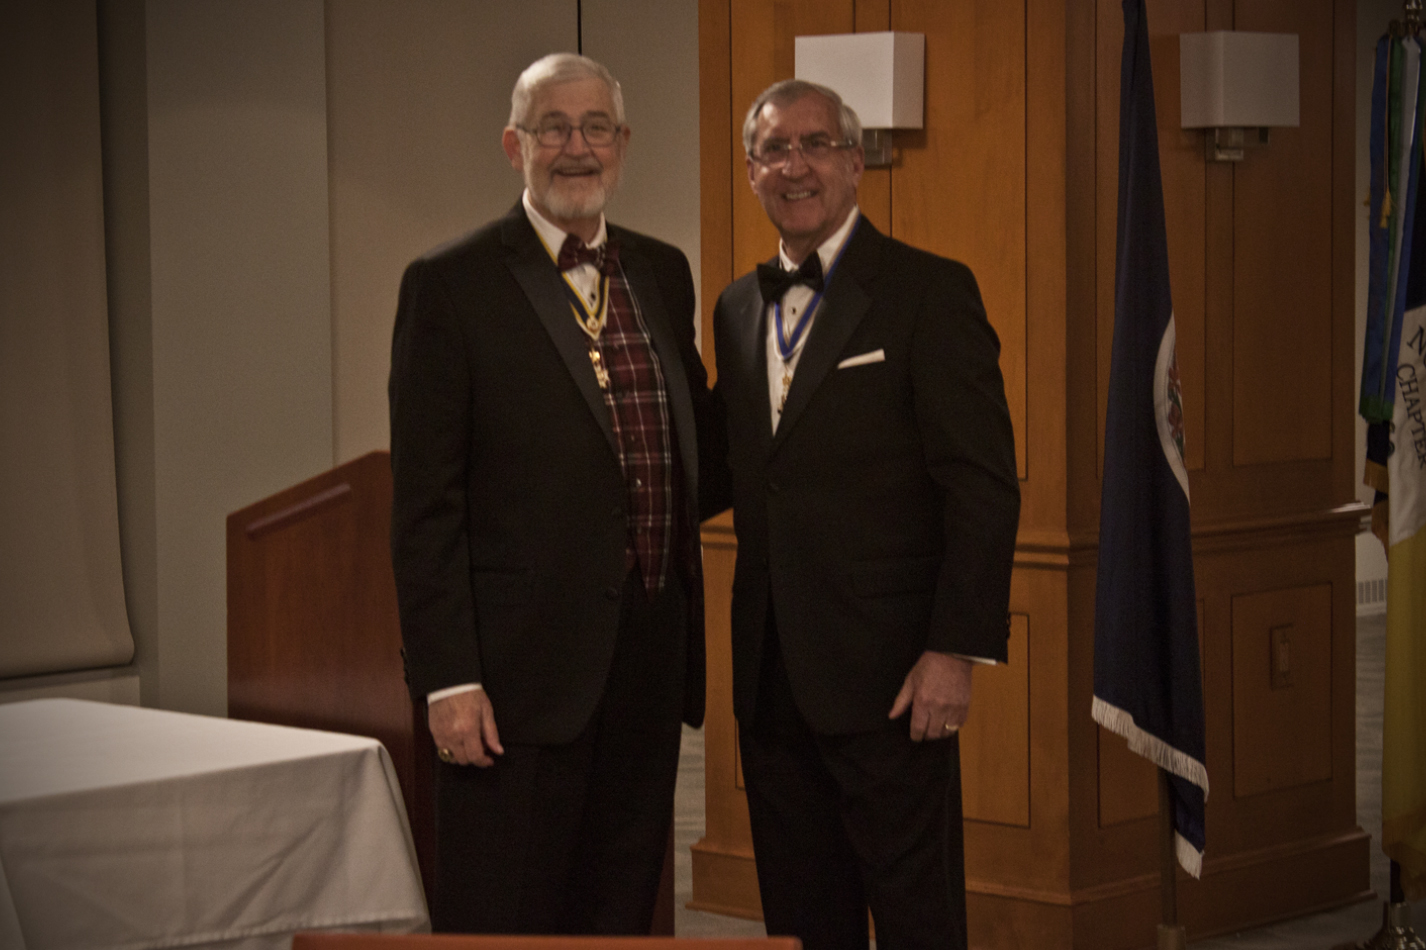 President Hawkins presents Immediate Past President Maury Weeks with the Meritorious Service Medal and Certificate